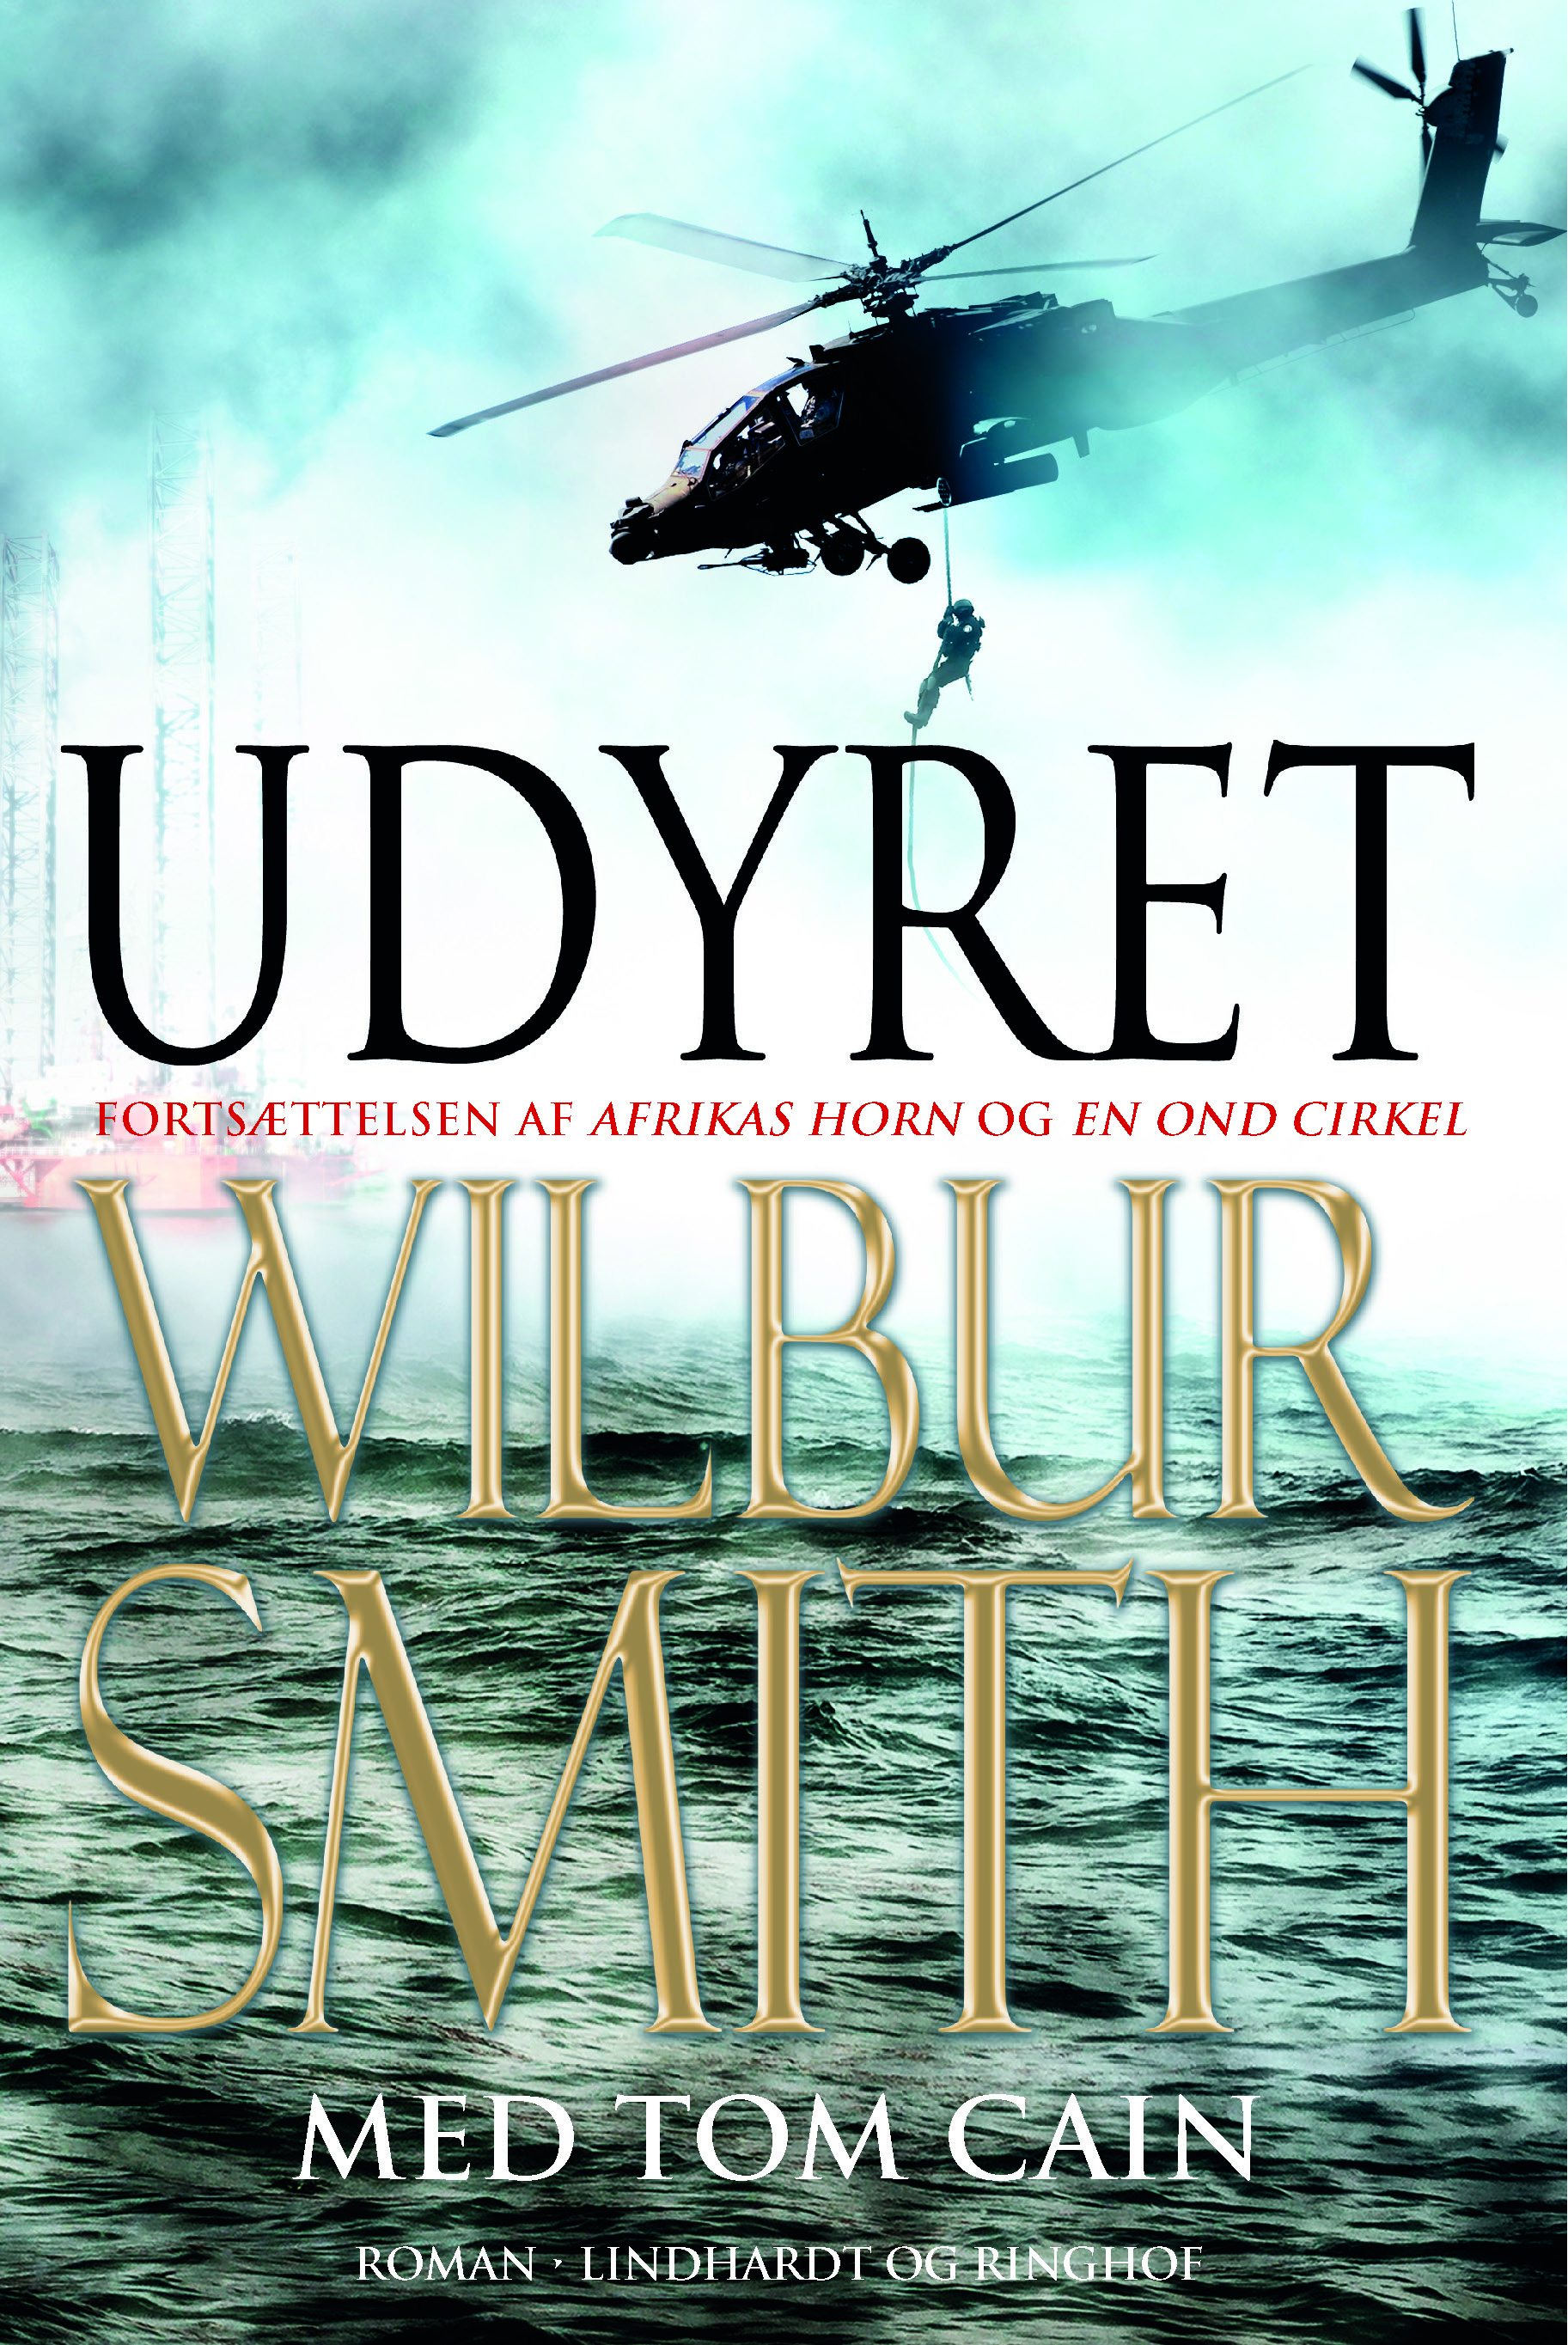 wilbur smith udyret